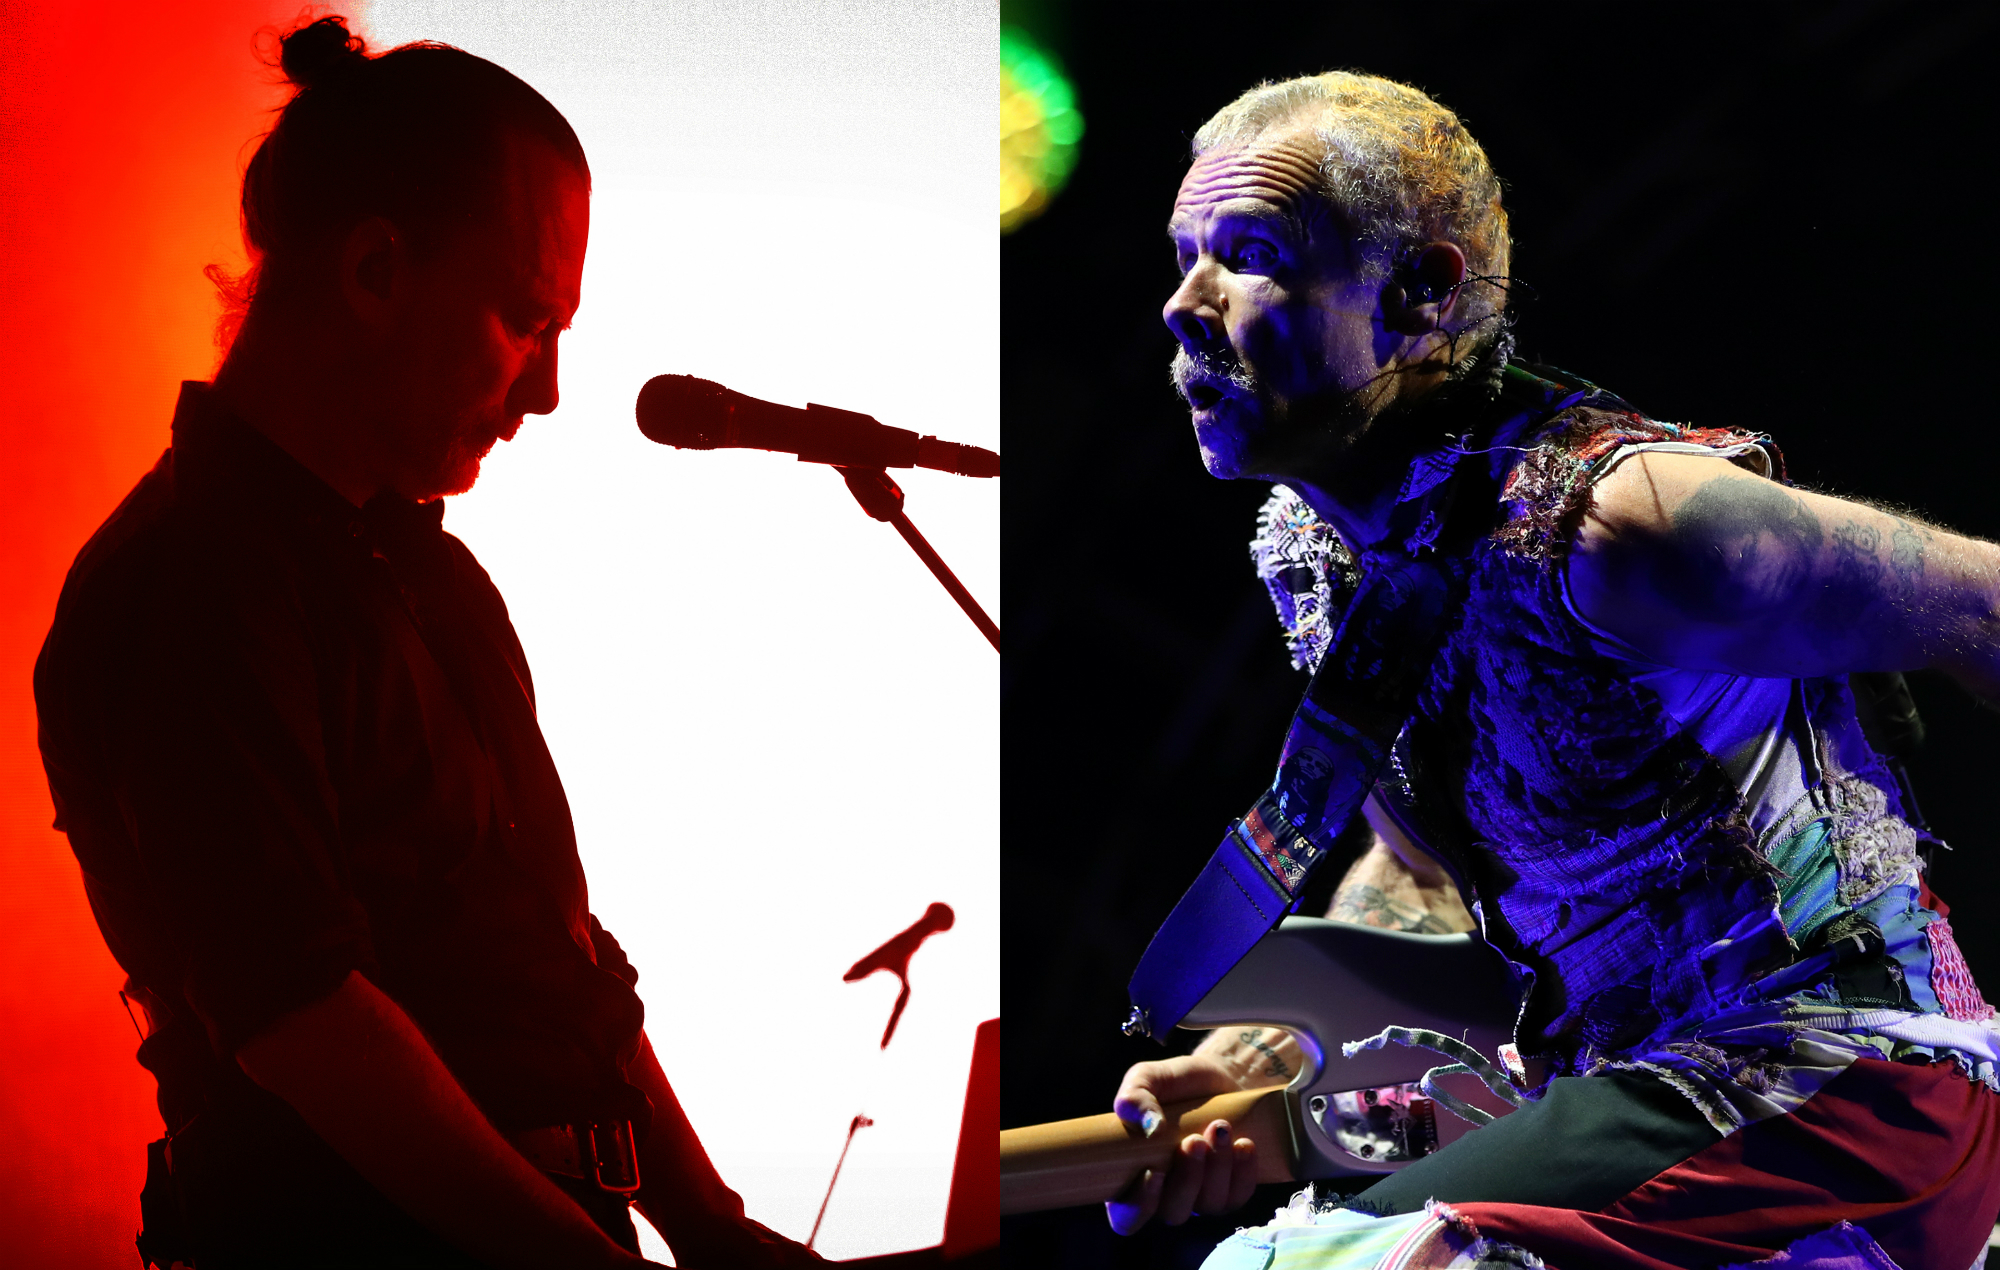 Listen to Thom Yorke and Flea's haunting new collaboration, 'Daily Battles' | NME